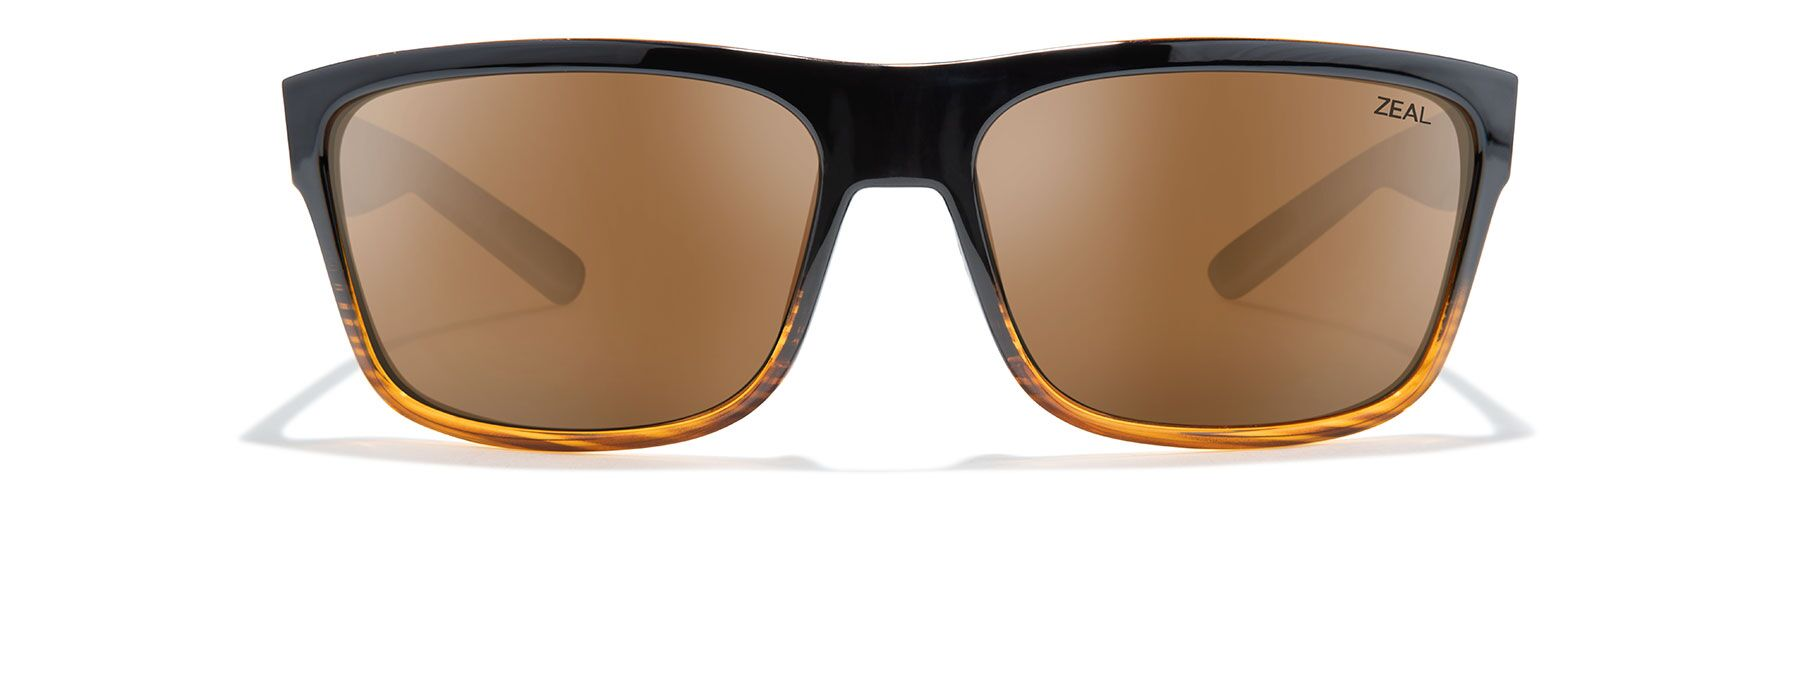 Rampart sunglasses